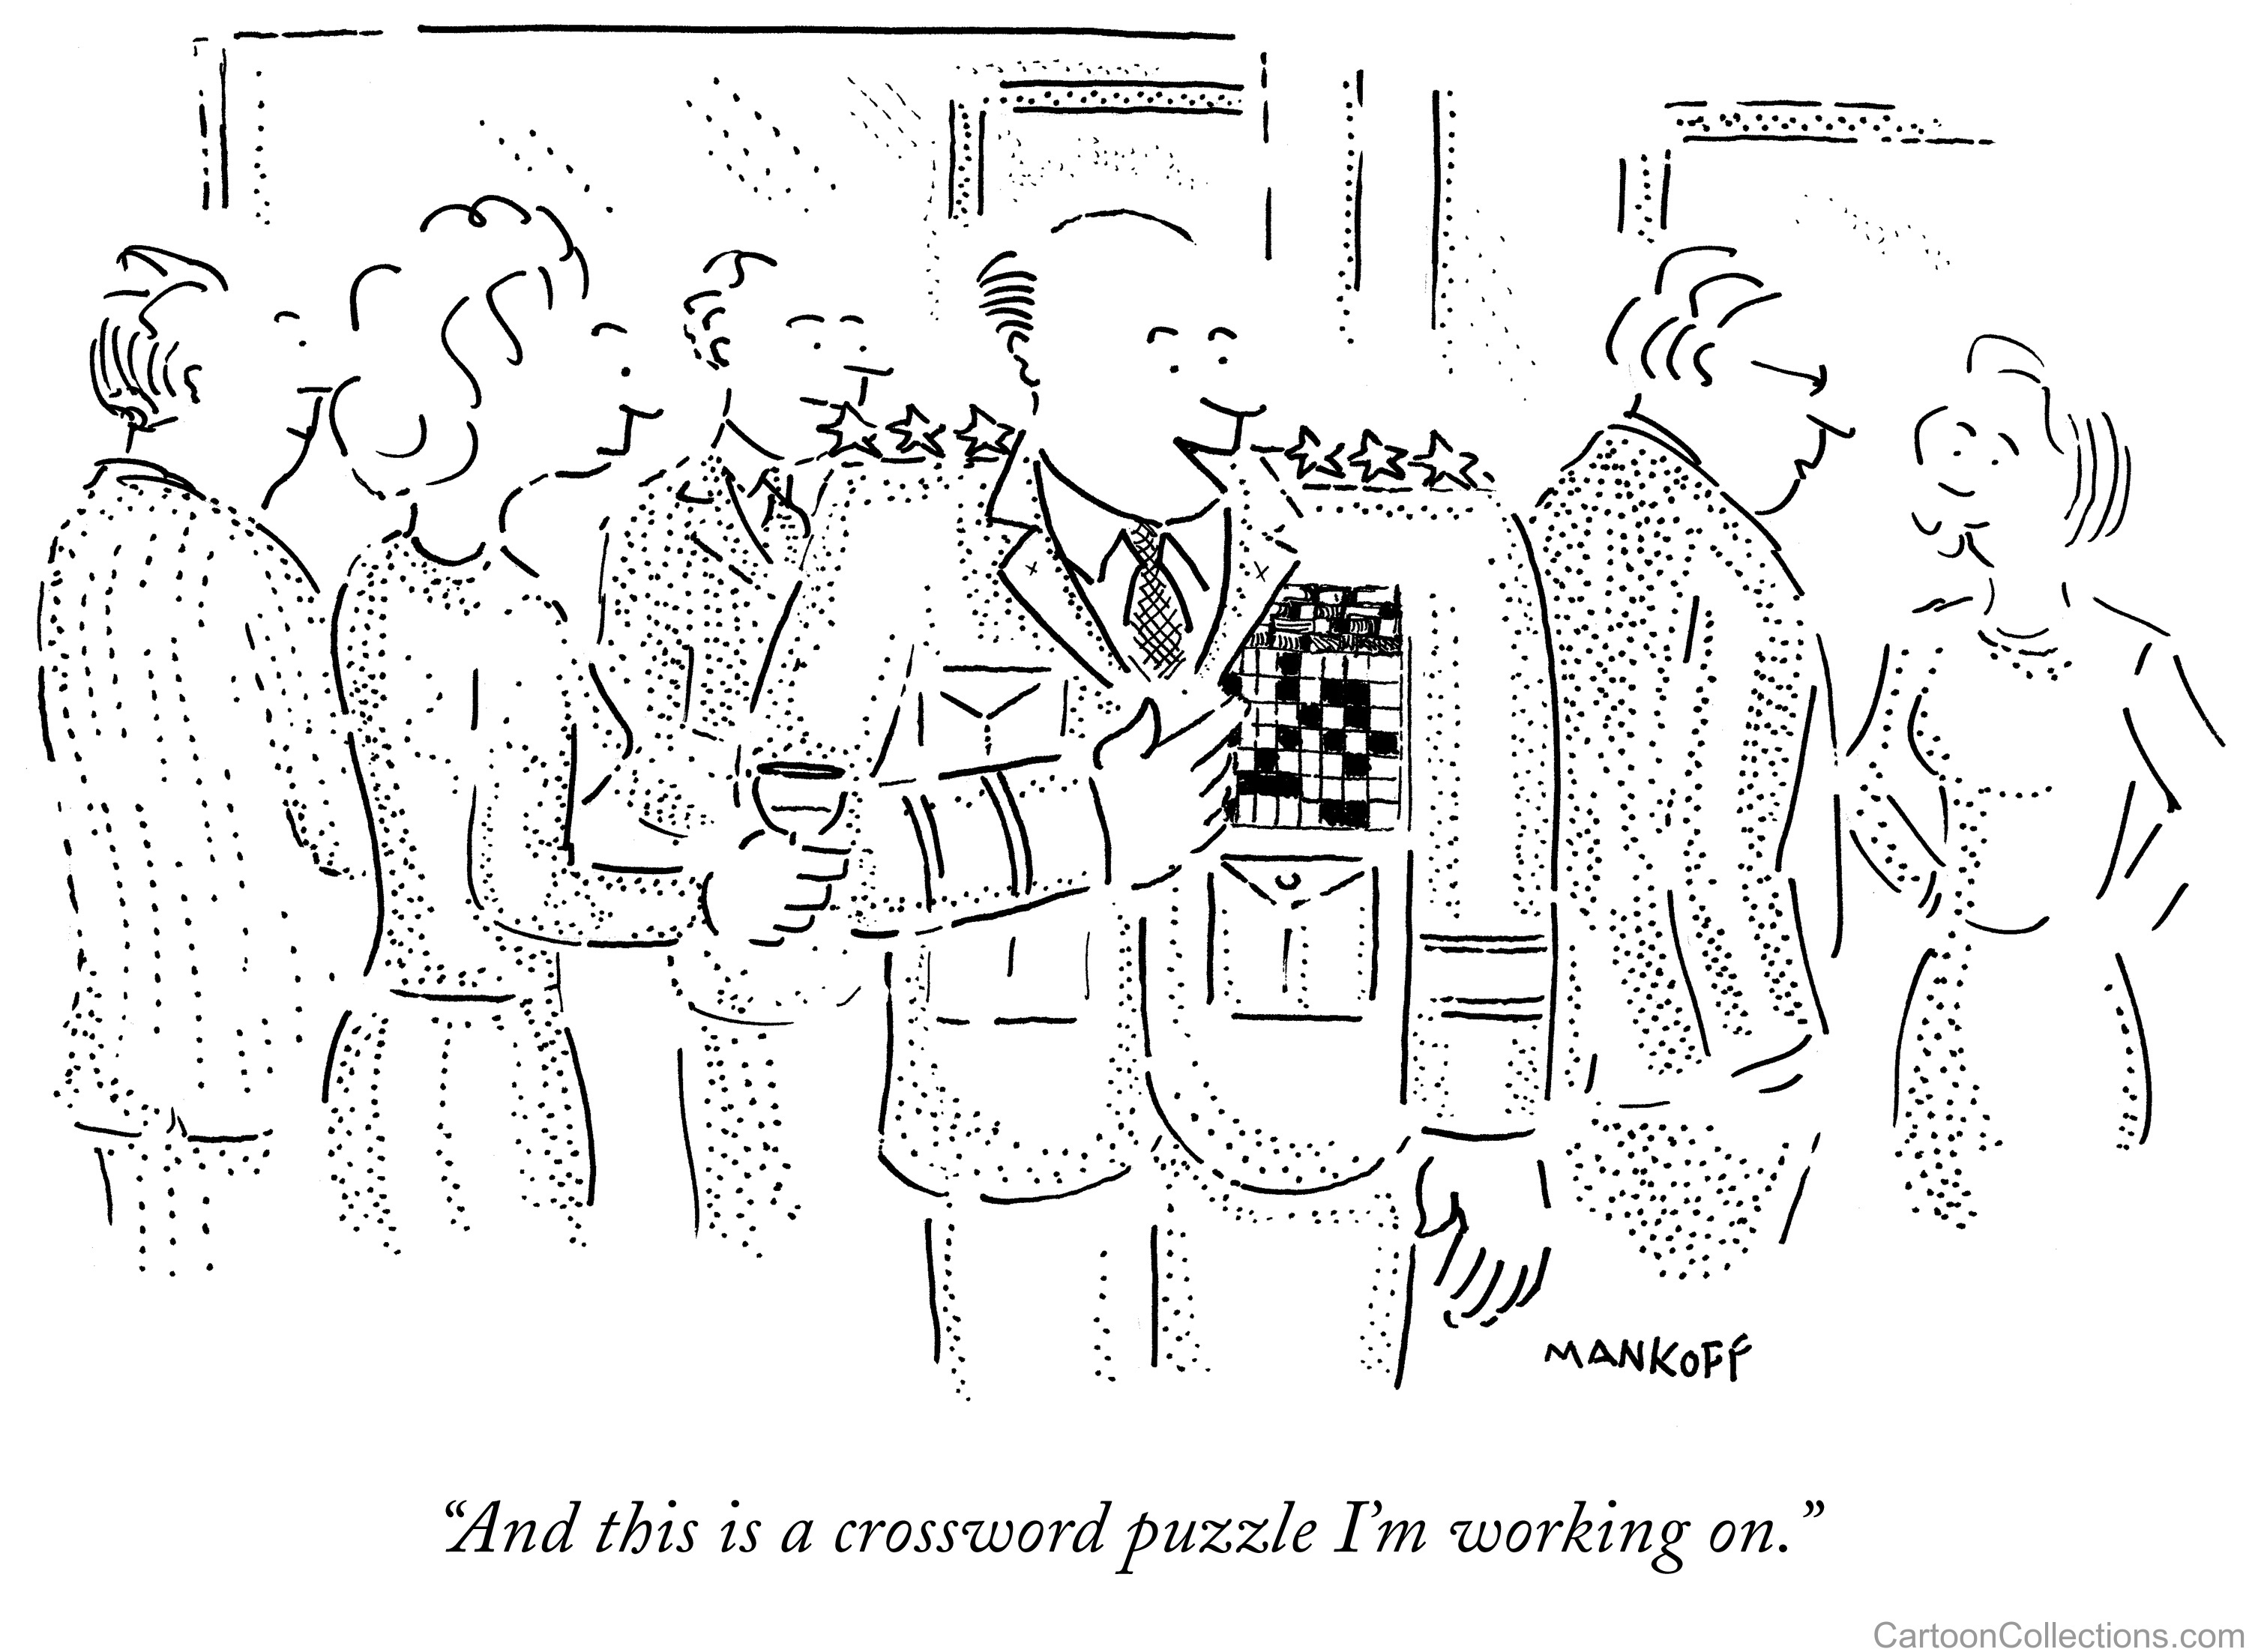 New Yorker Cartoon of a general with a crossword in place of his service ribbons and the caption